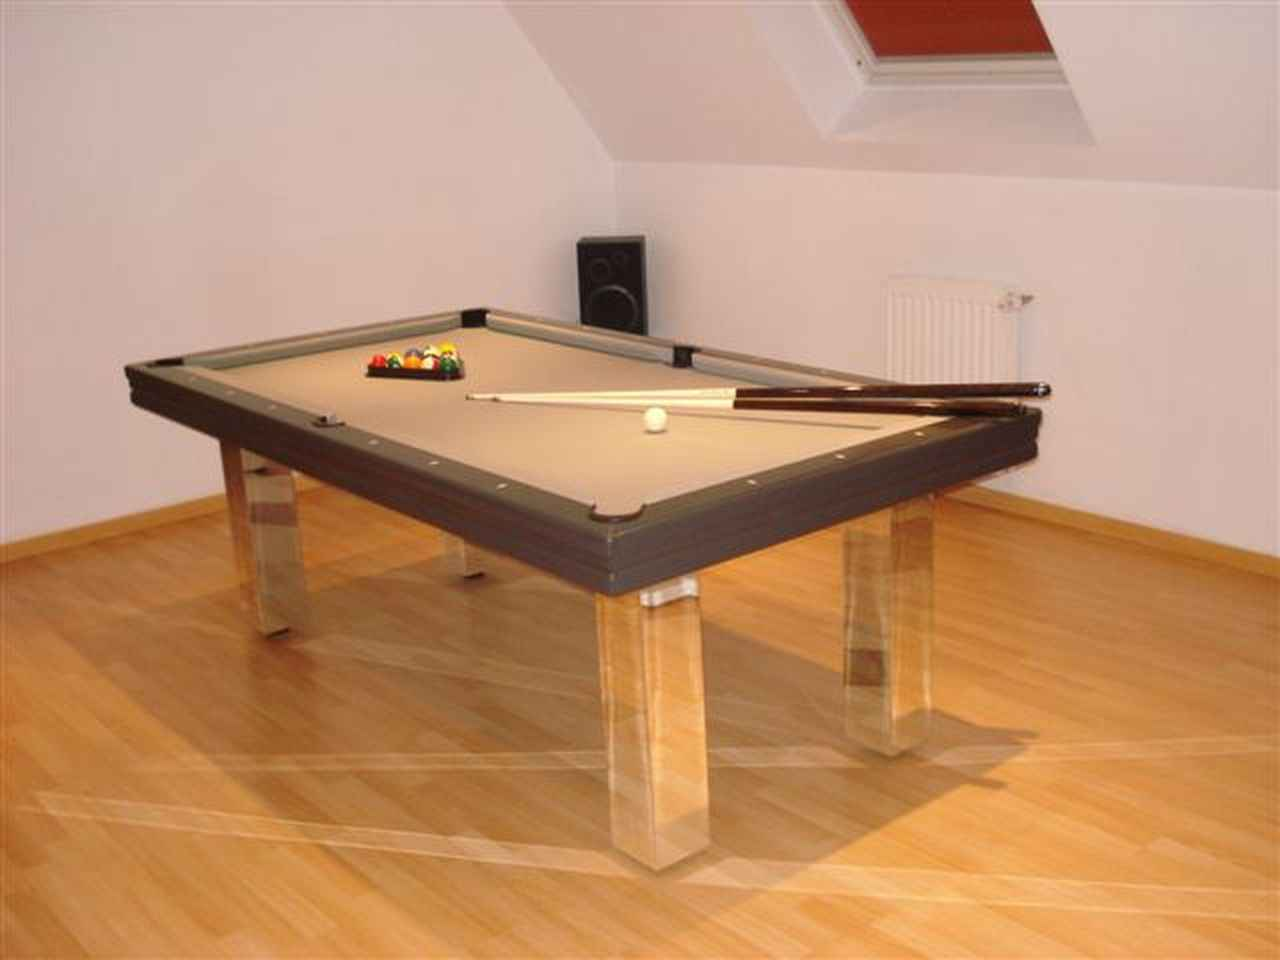 billard toulet miroir dans billard toulet sur id e d coration vitrine magasin. Black Bedroom Furniture Sets. Home Design Ideas